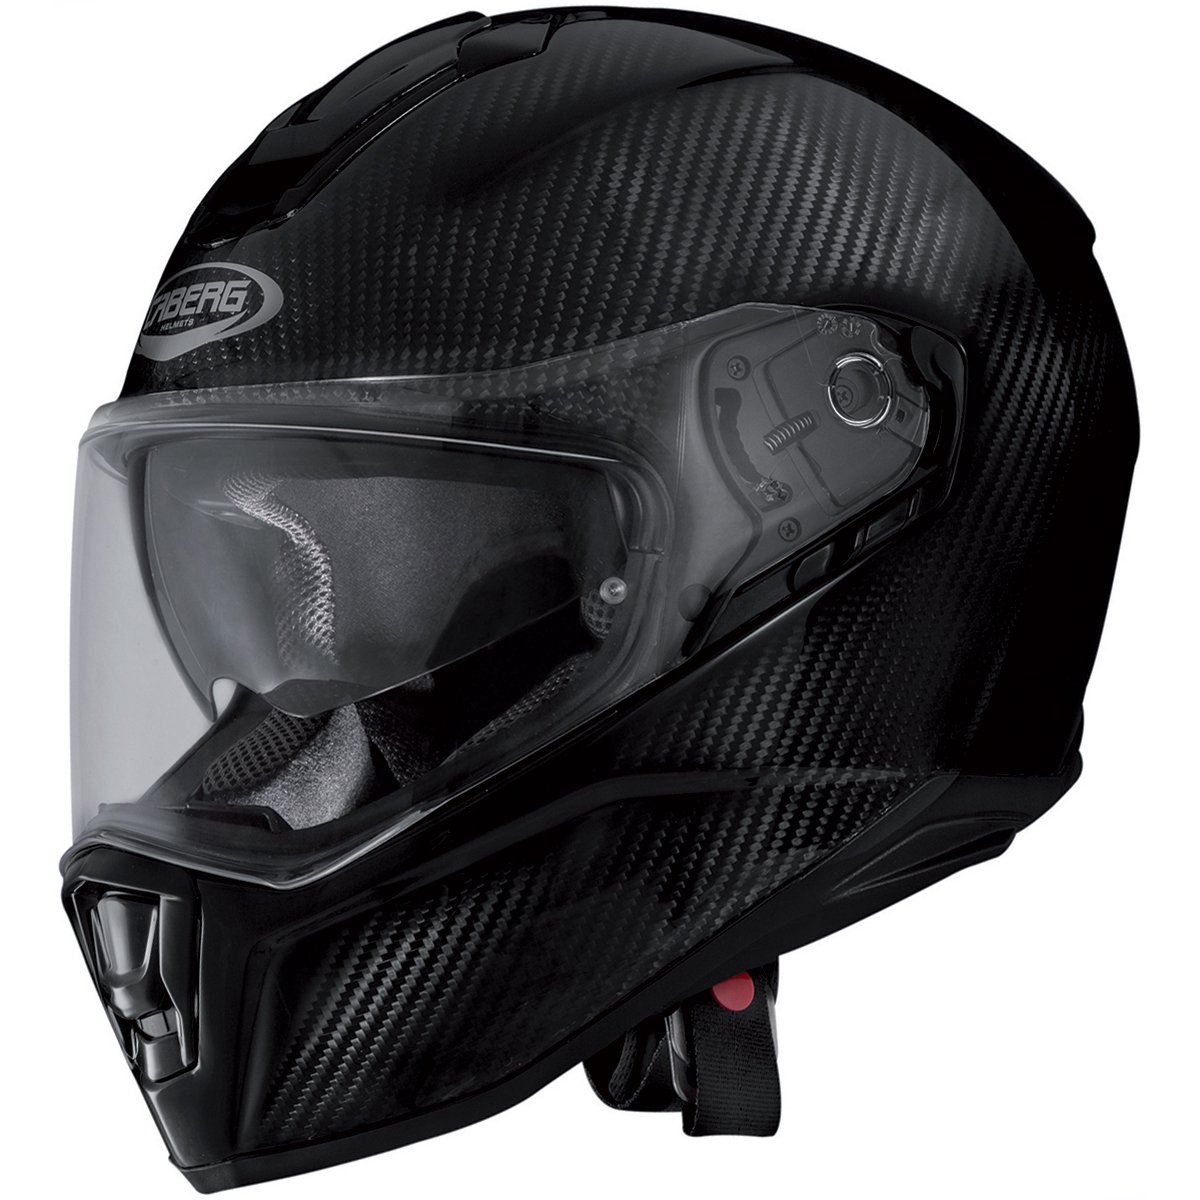 The Caberg Drift Carbon Motorcycle Helmet